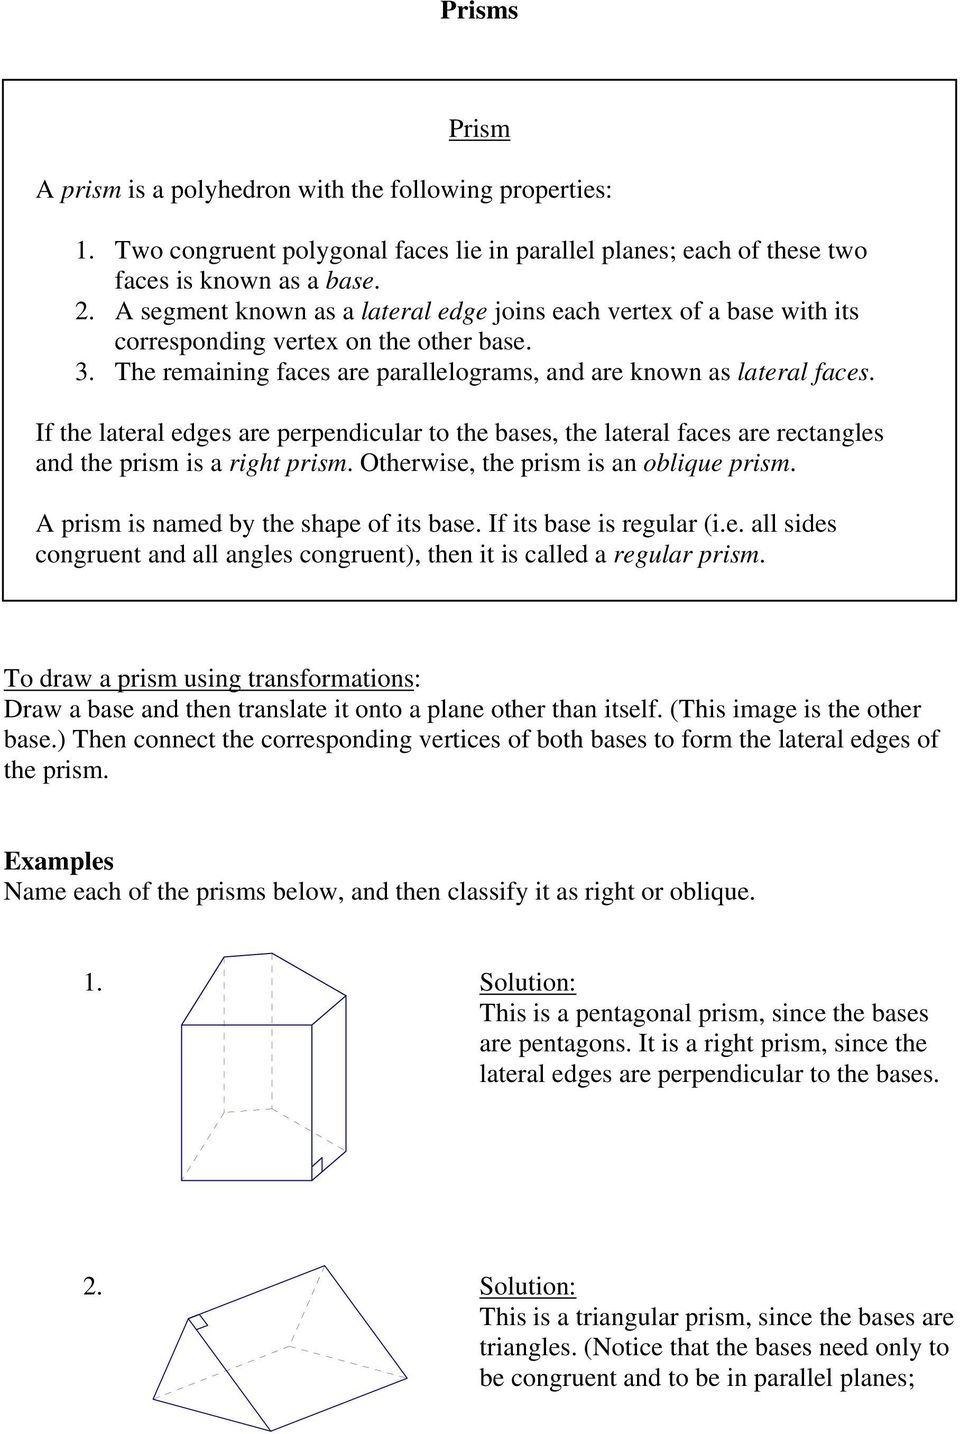 If the lateral edges are perpendicular to the bases, the lateral faces are rectangles and the prism is a right prism. Otherwise, the prism is an oblique prism.